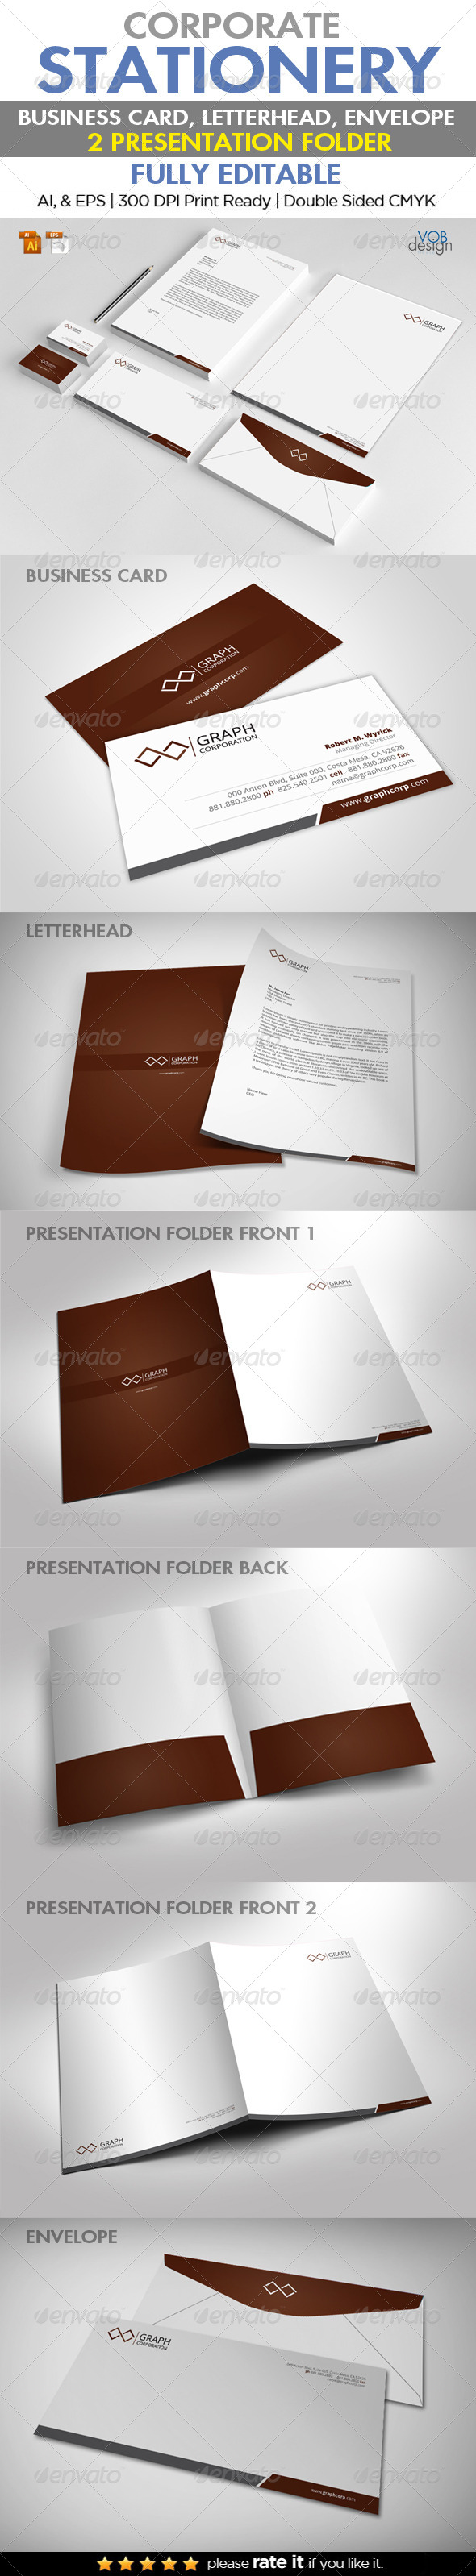 GraphicRiver Corporate Stationery 6732381